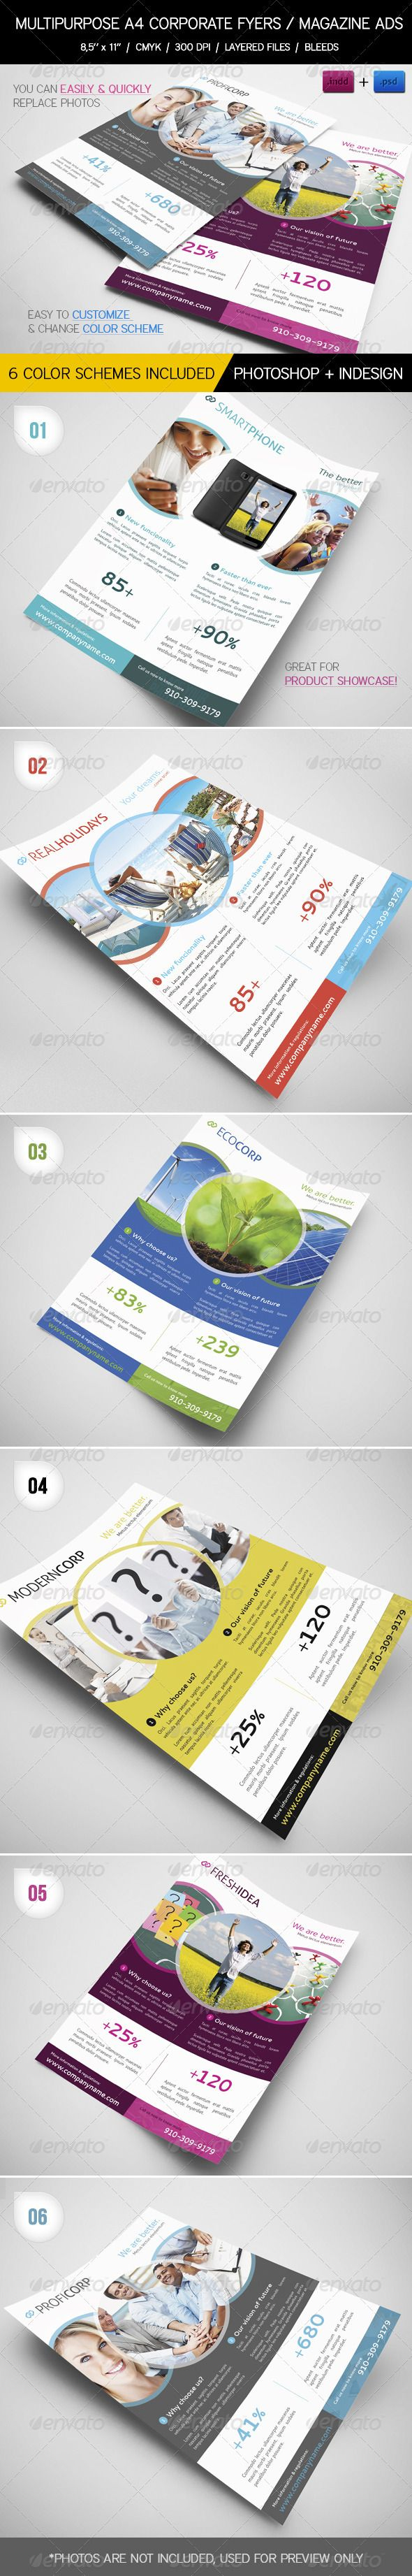 96 Best Images About Clean Print Design On Pinterest Event Posters Real Estate Flyers And